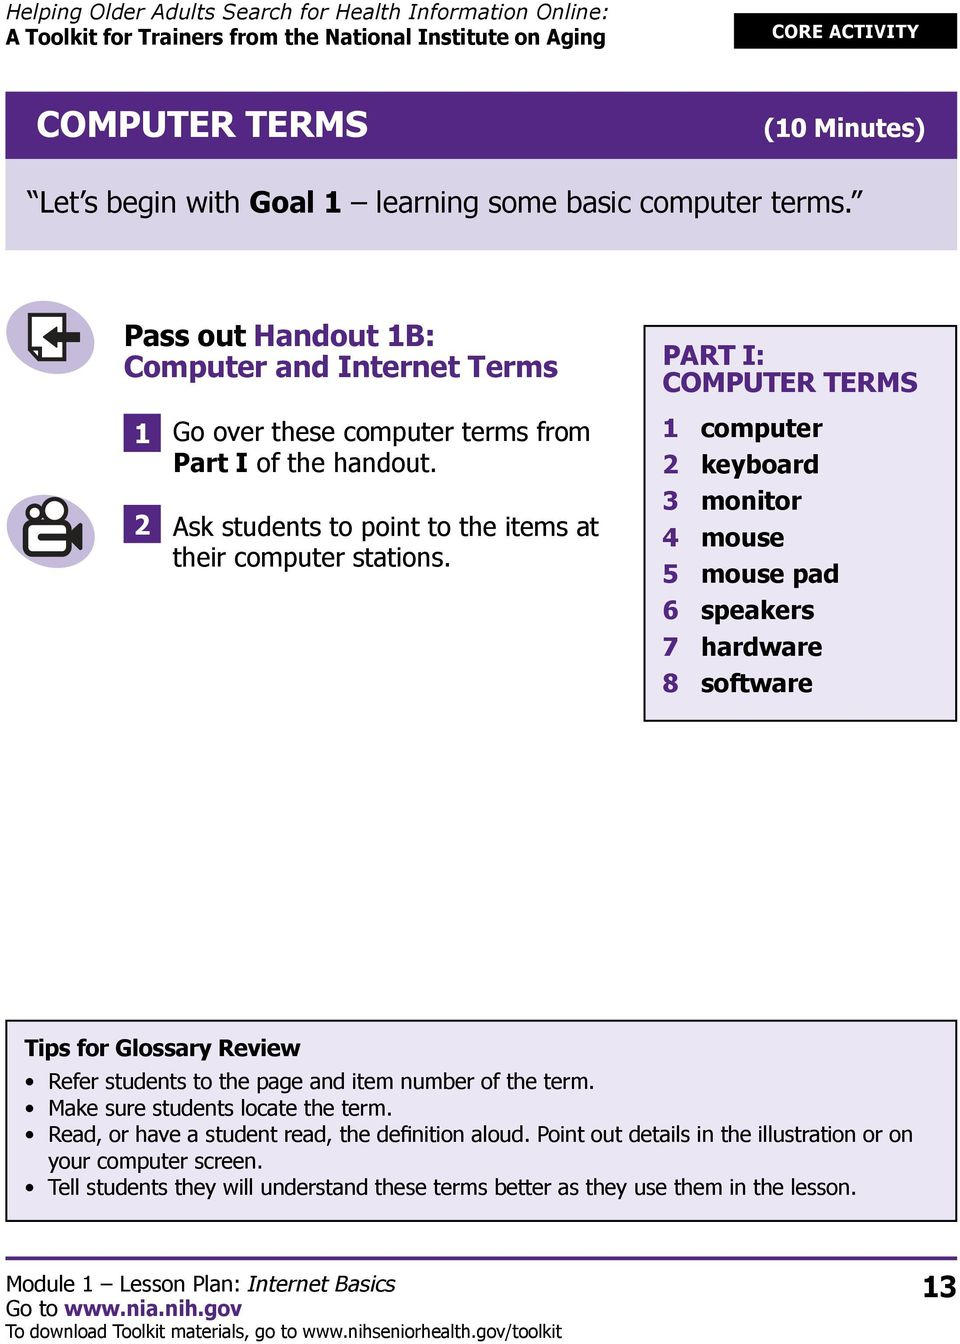 PART I: COMPUTER TERMS 1 computer 2 keyboard 3 monitor 4 mouse 5 mouse pad 6 speakers 7 hardware 8 software Tips for Glossary Review Refer students to the page and item number of the